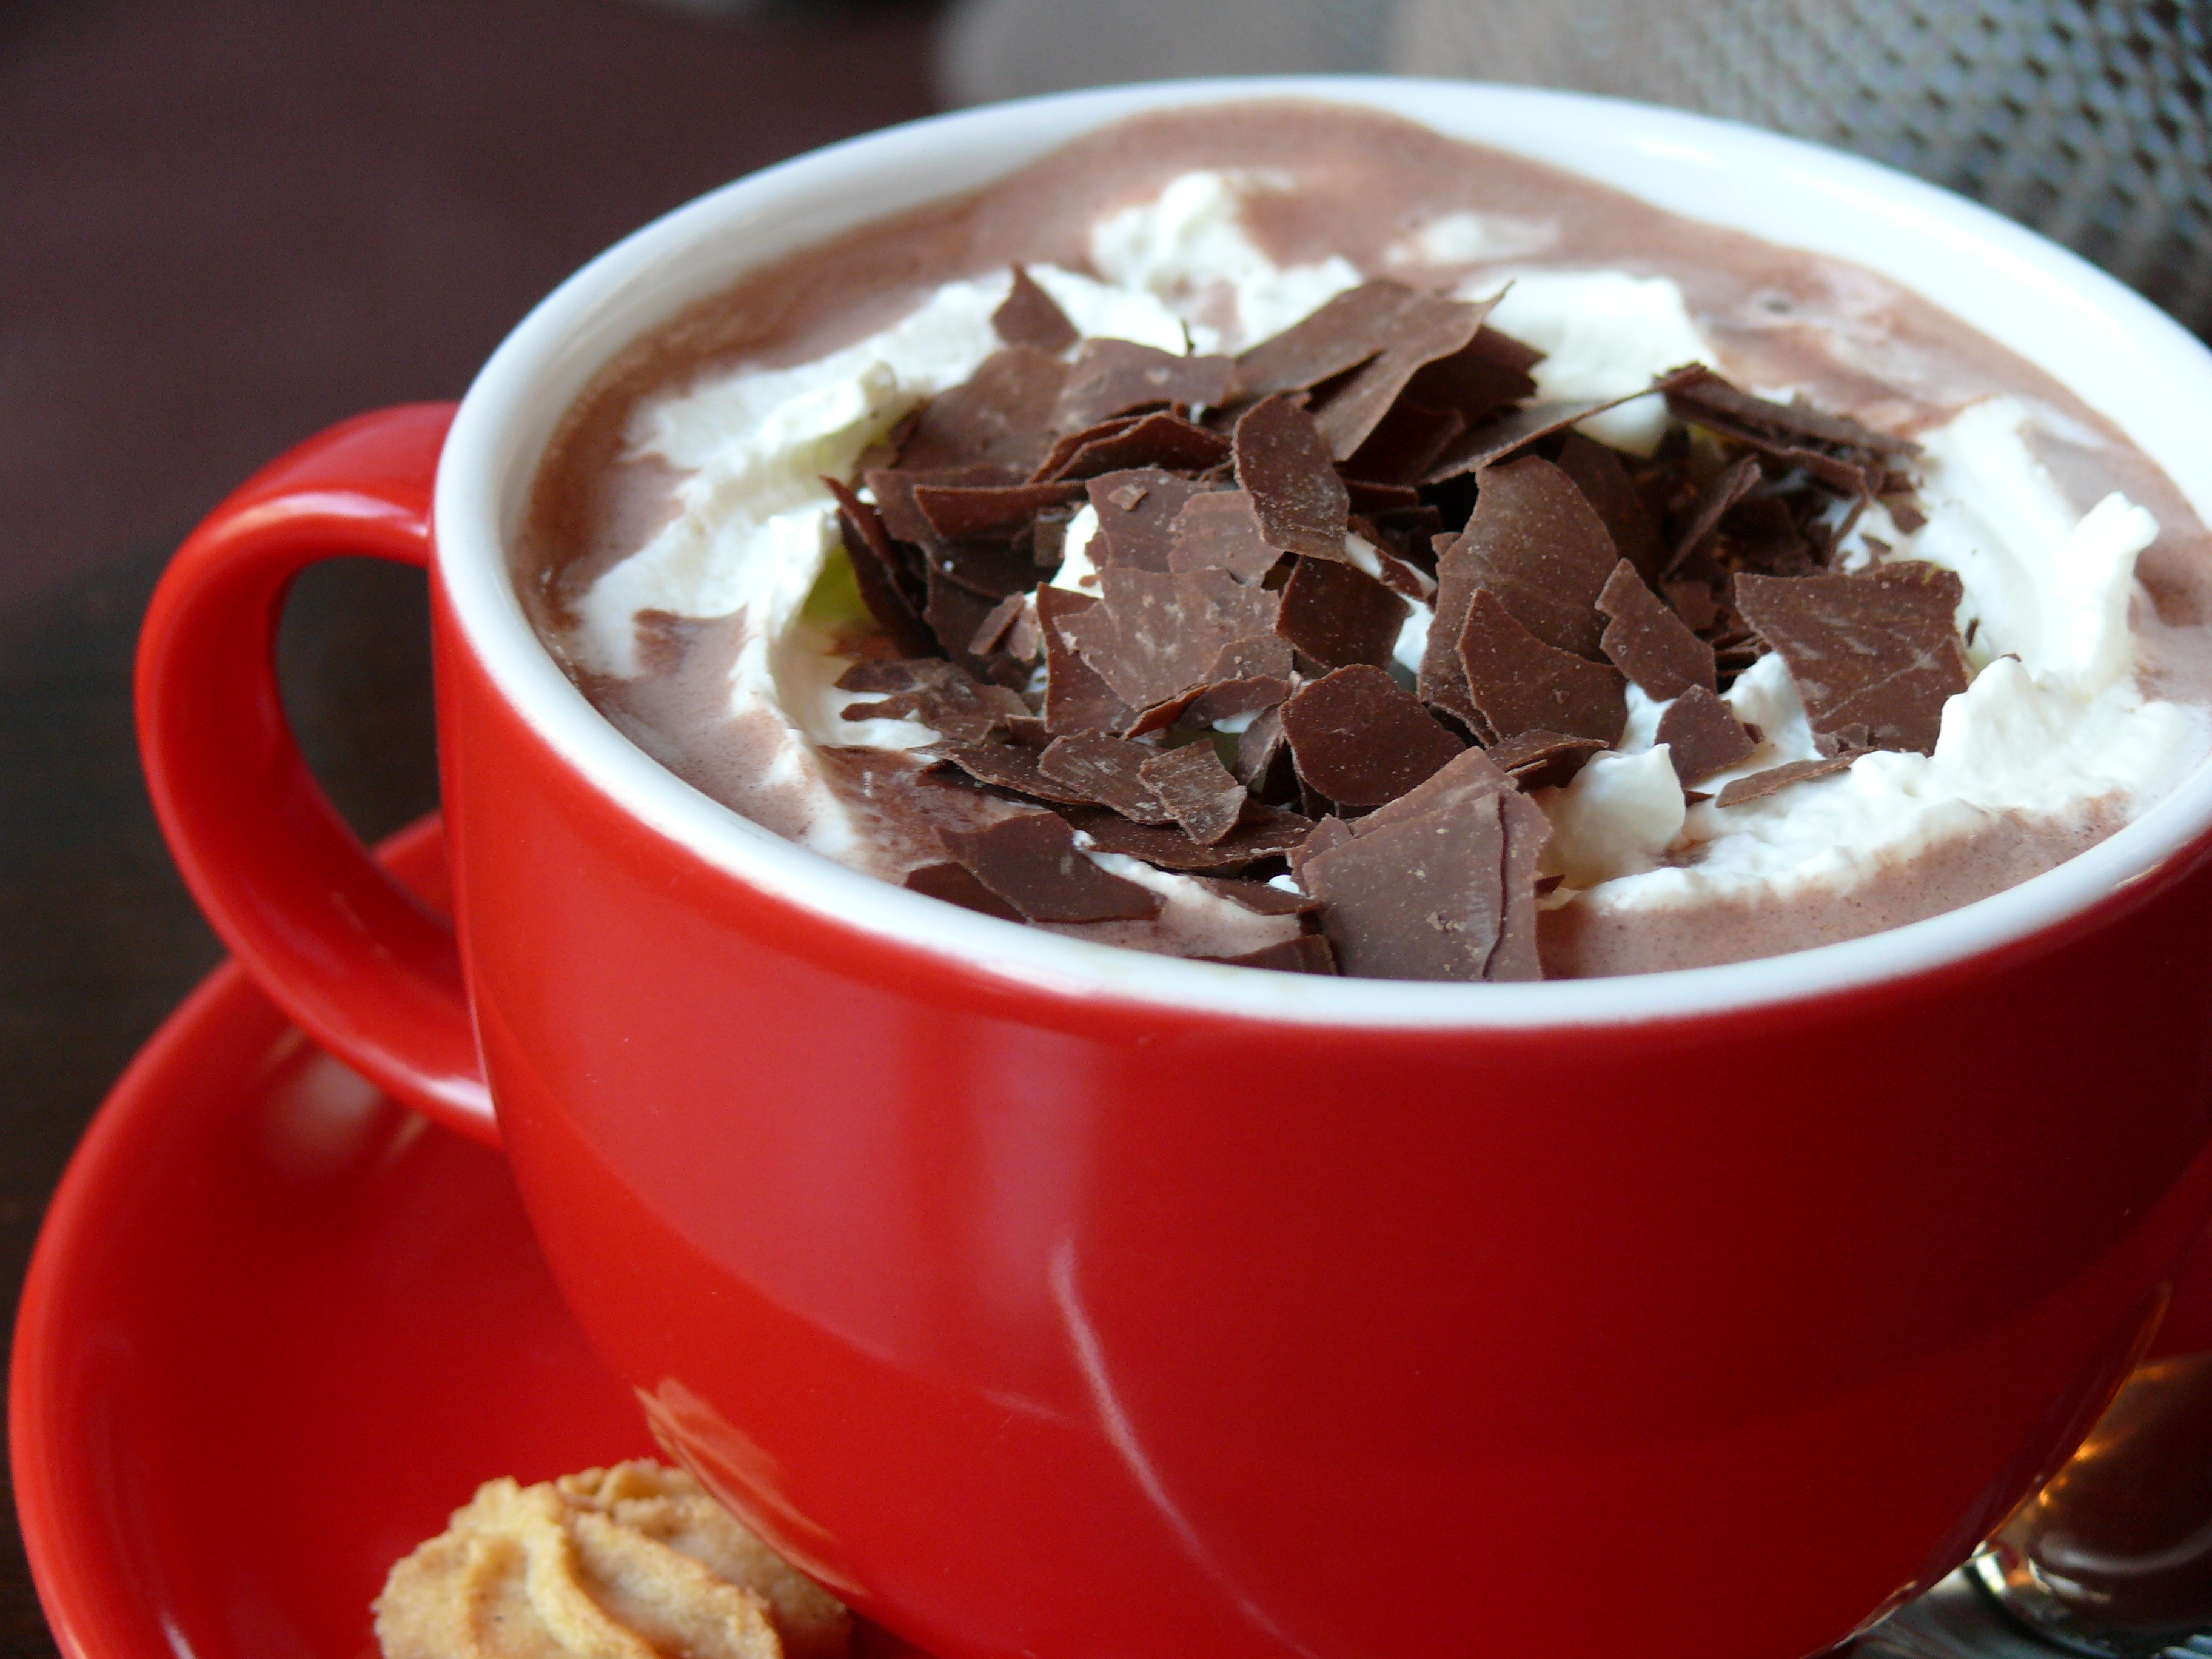 Soda Fountain Malty Hot Chocolate